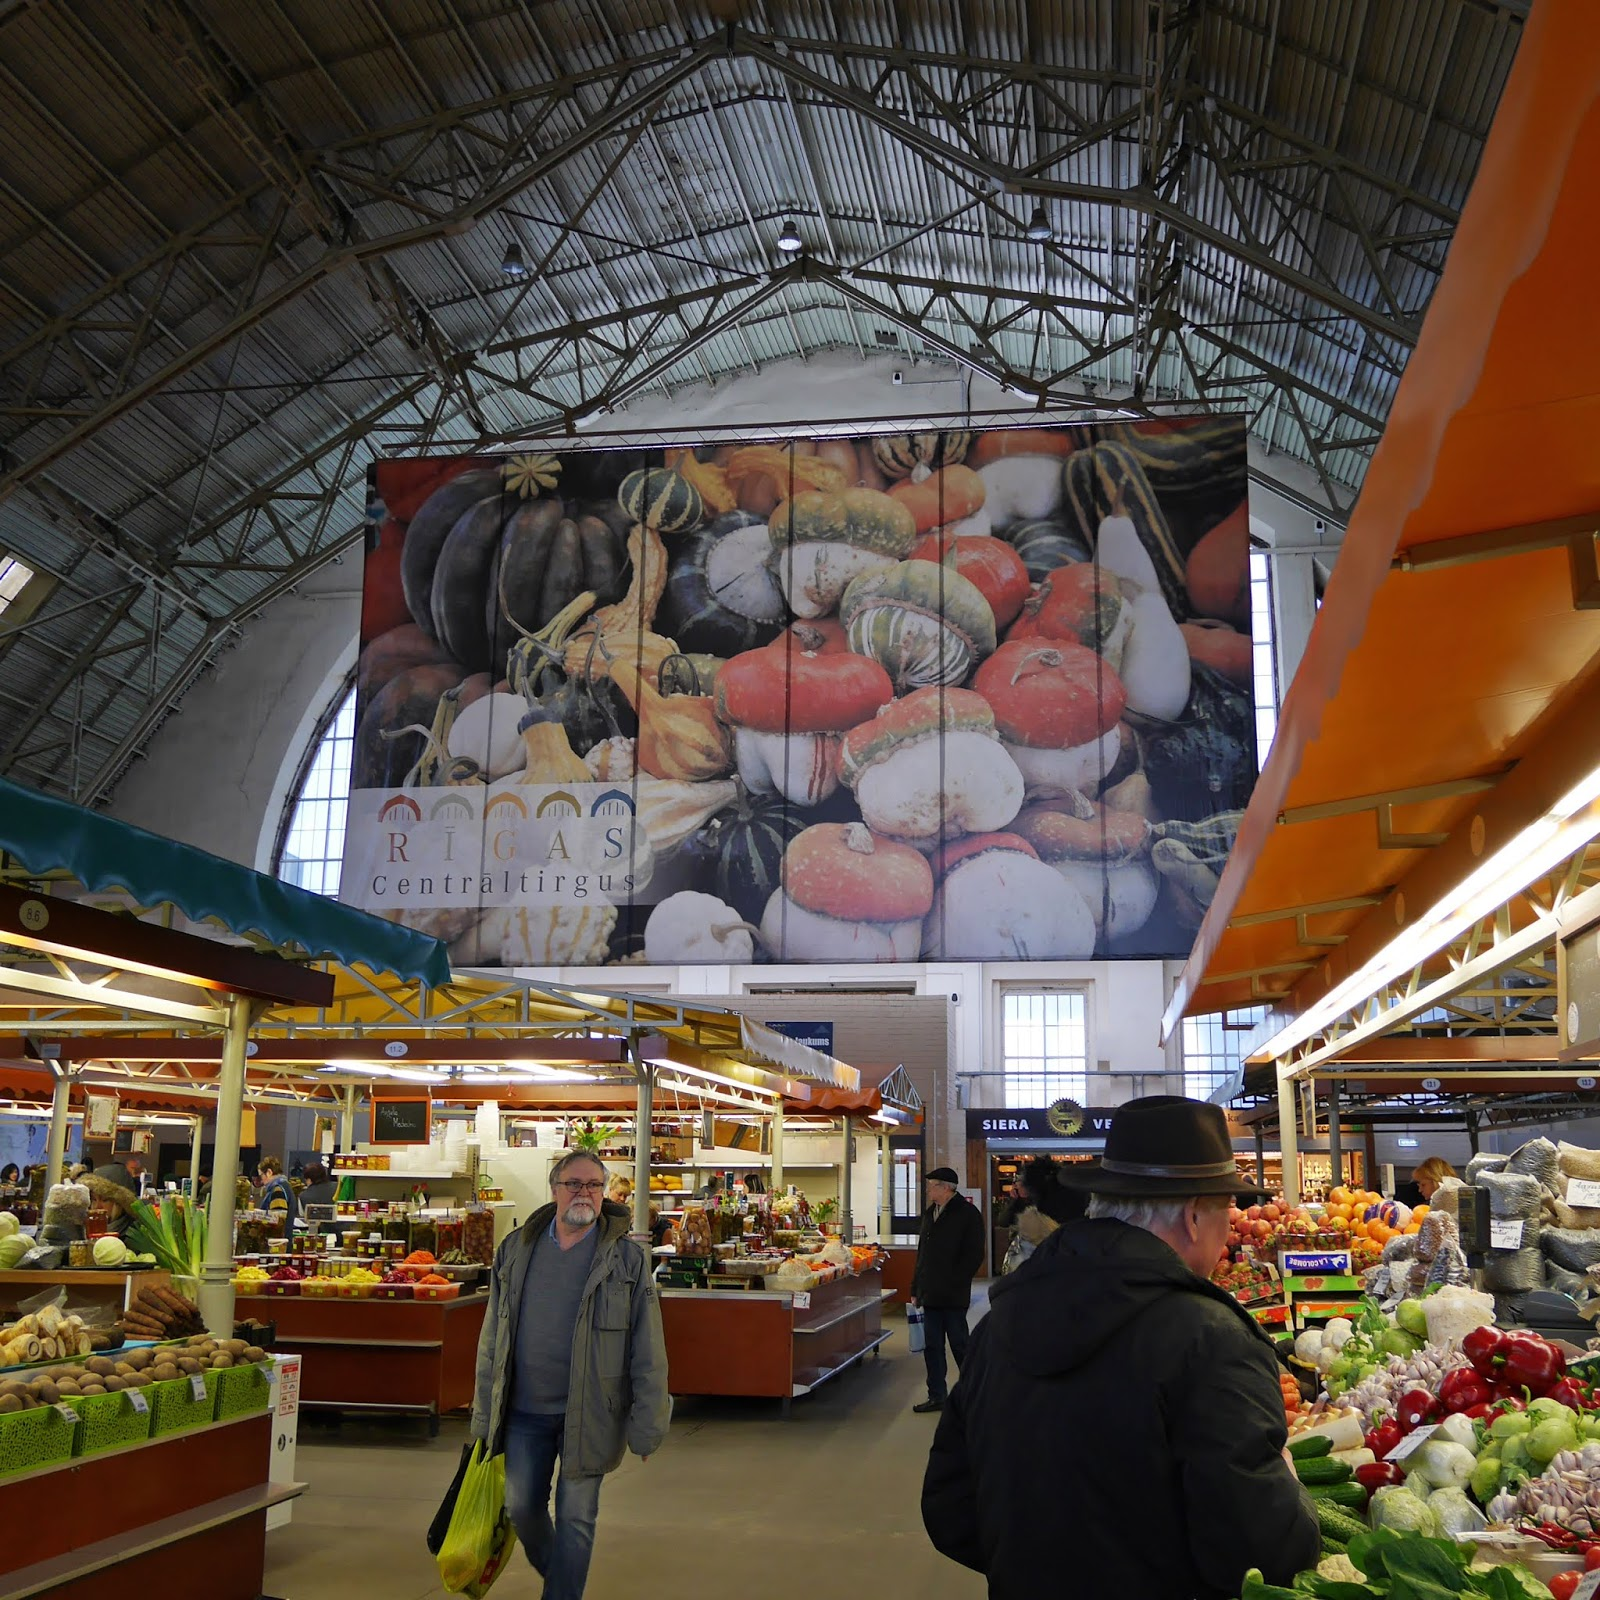 Riga Central Market, Latvia